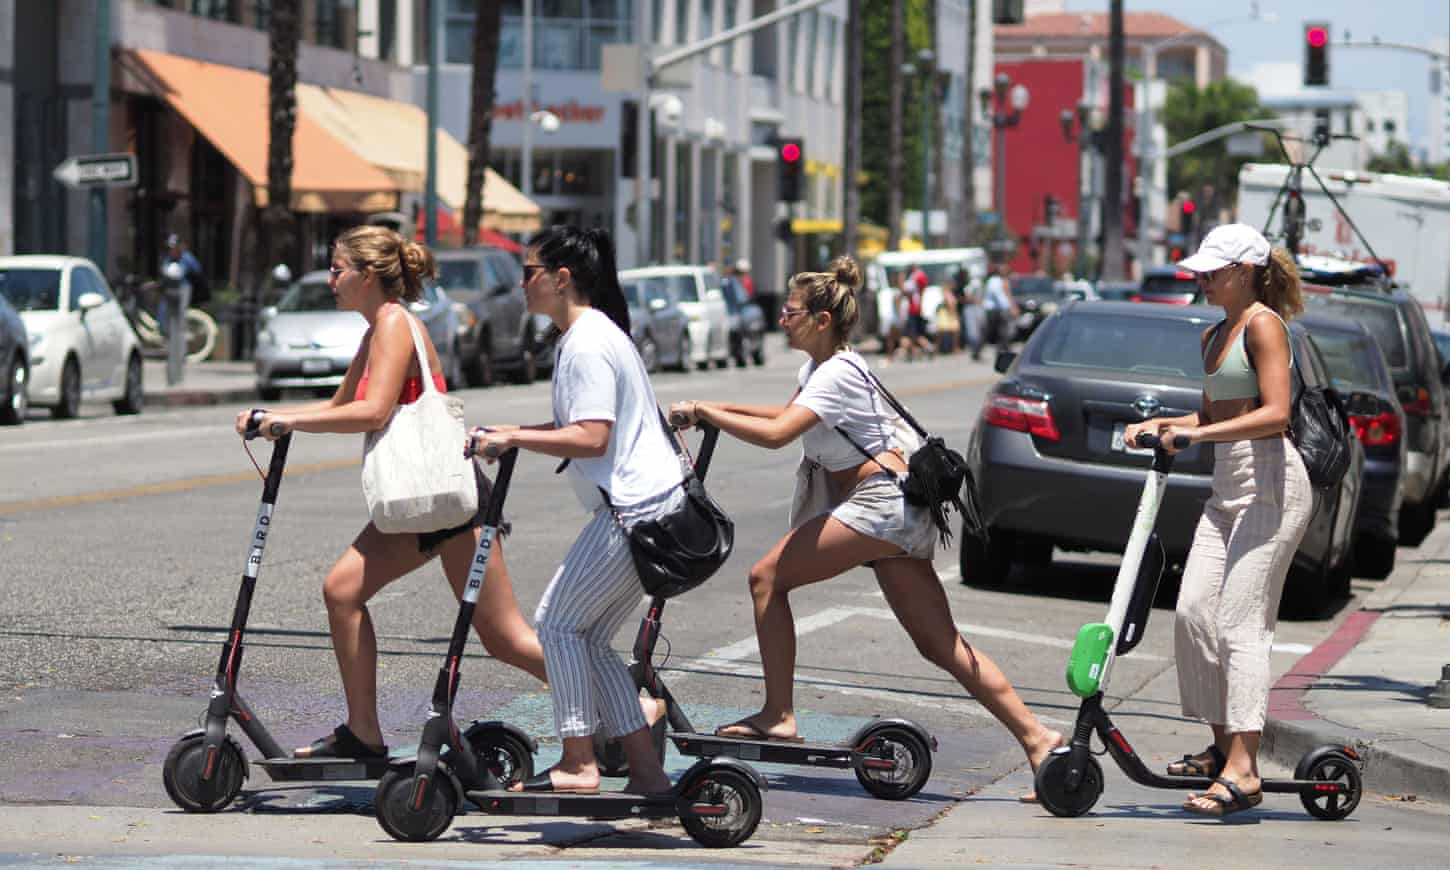 Welcome, watch or ban: how should cities deal with electric scooters?